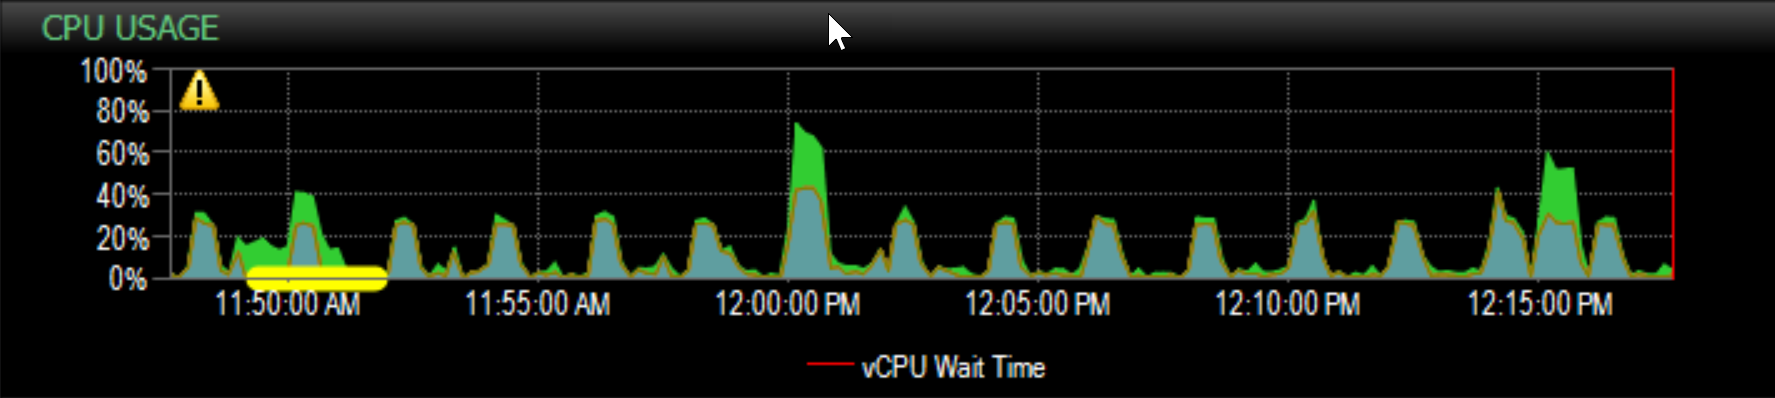 SentryOne Performance Analysis Dashboard CPU Usage graph